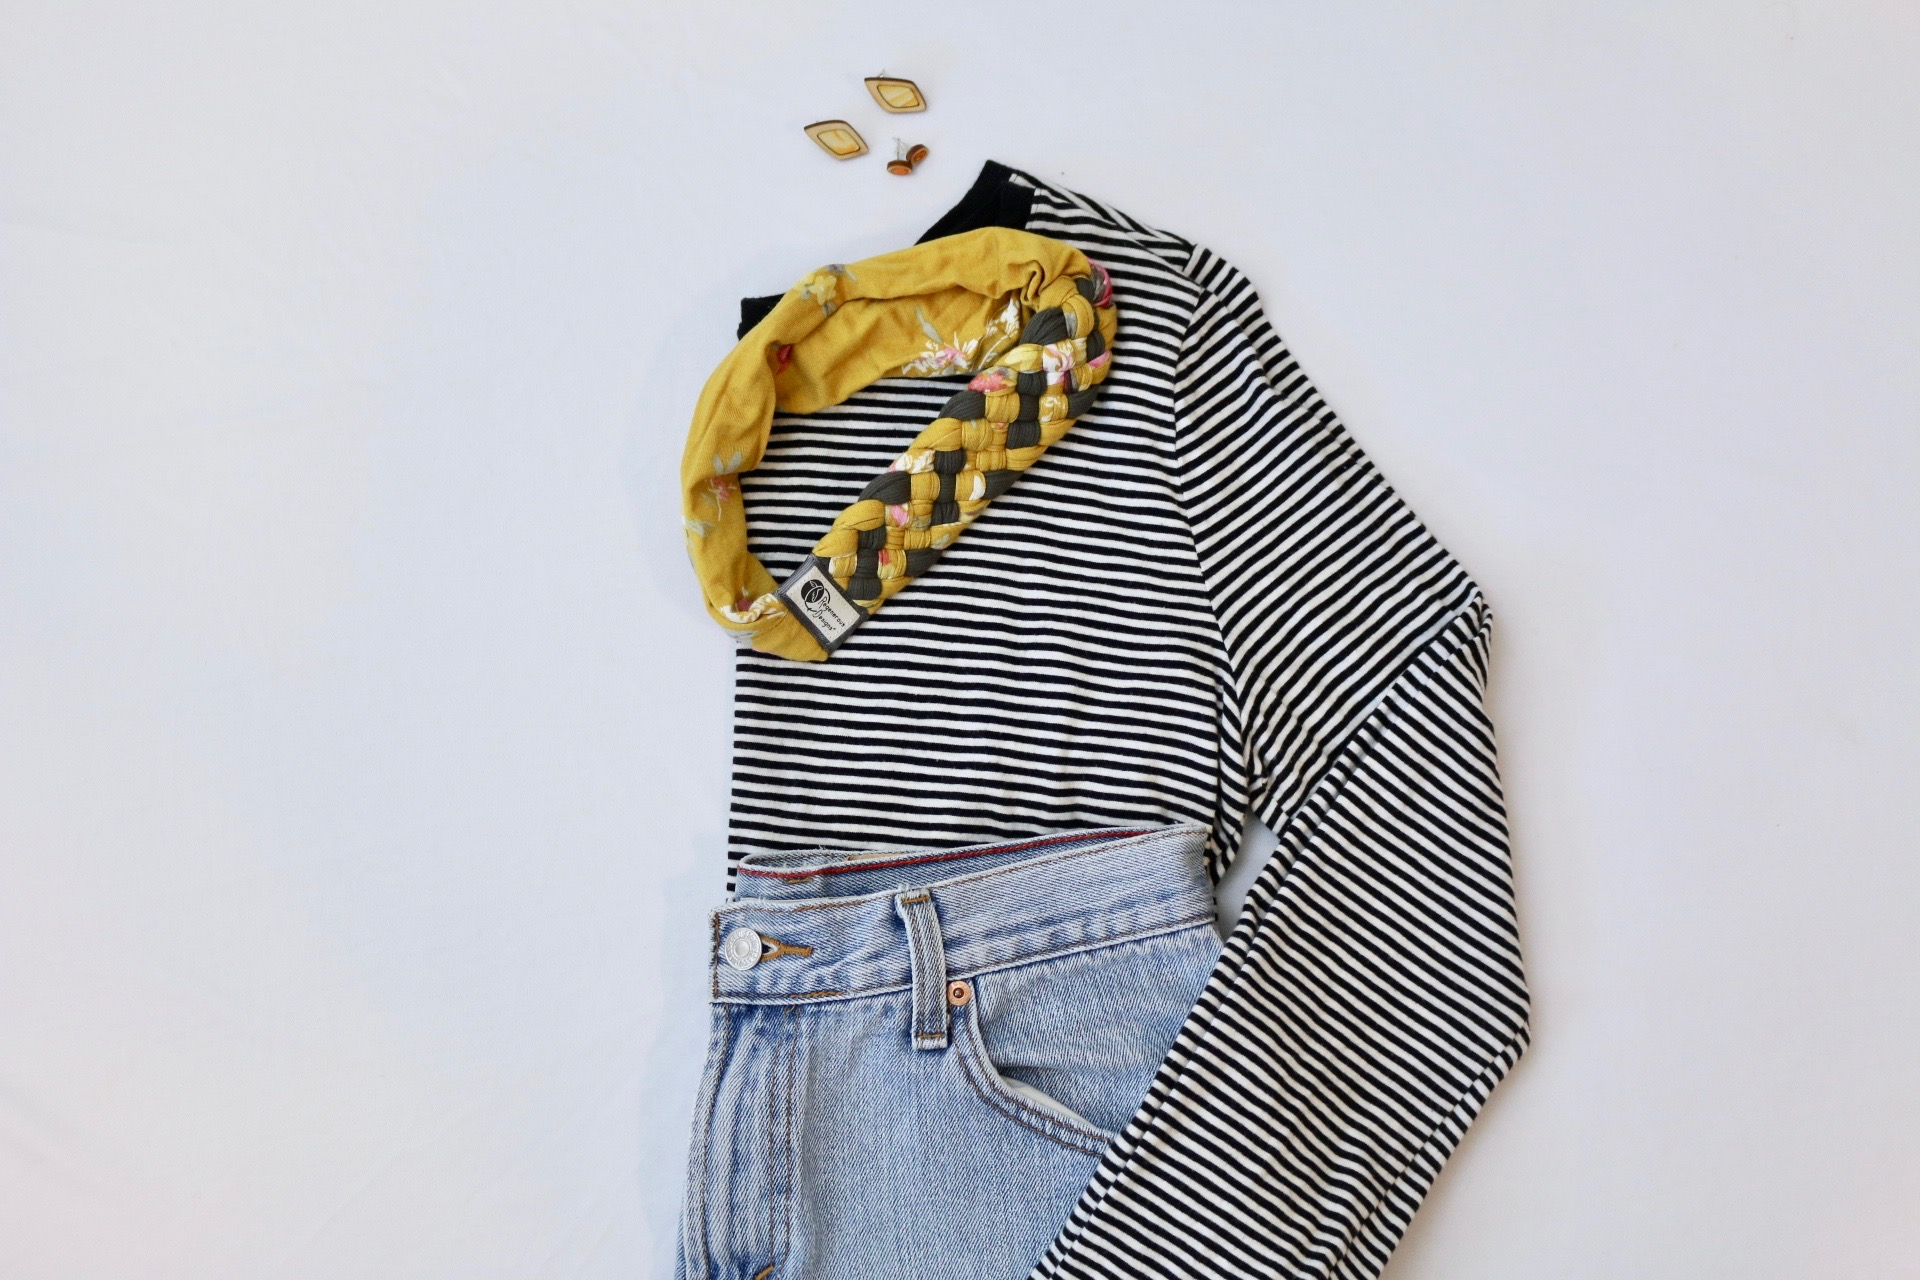 Black and white striped top with Regenerous Designs Big Braided Headband, stud earrings, and jeans.